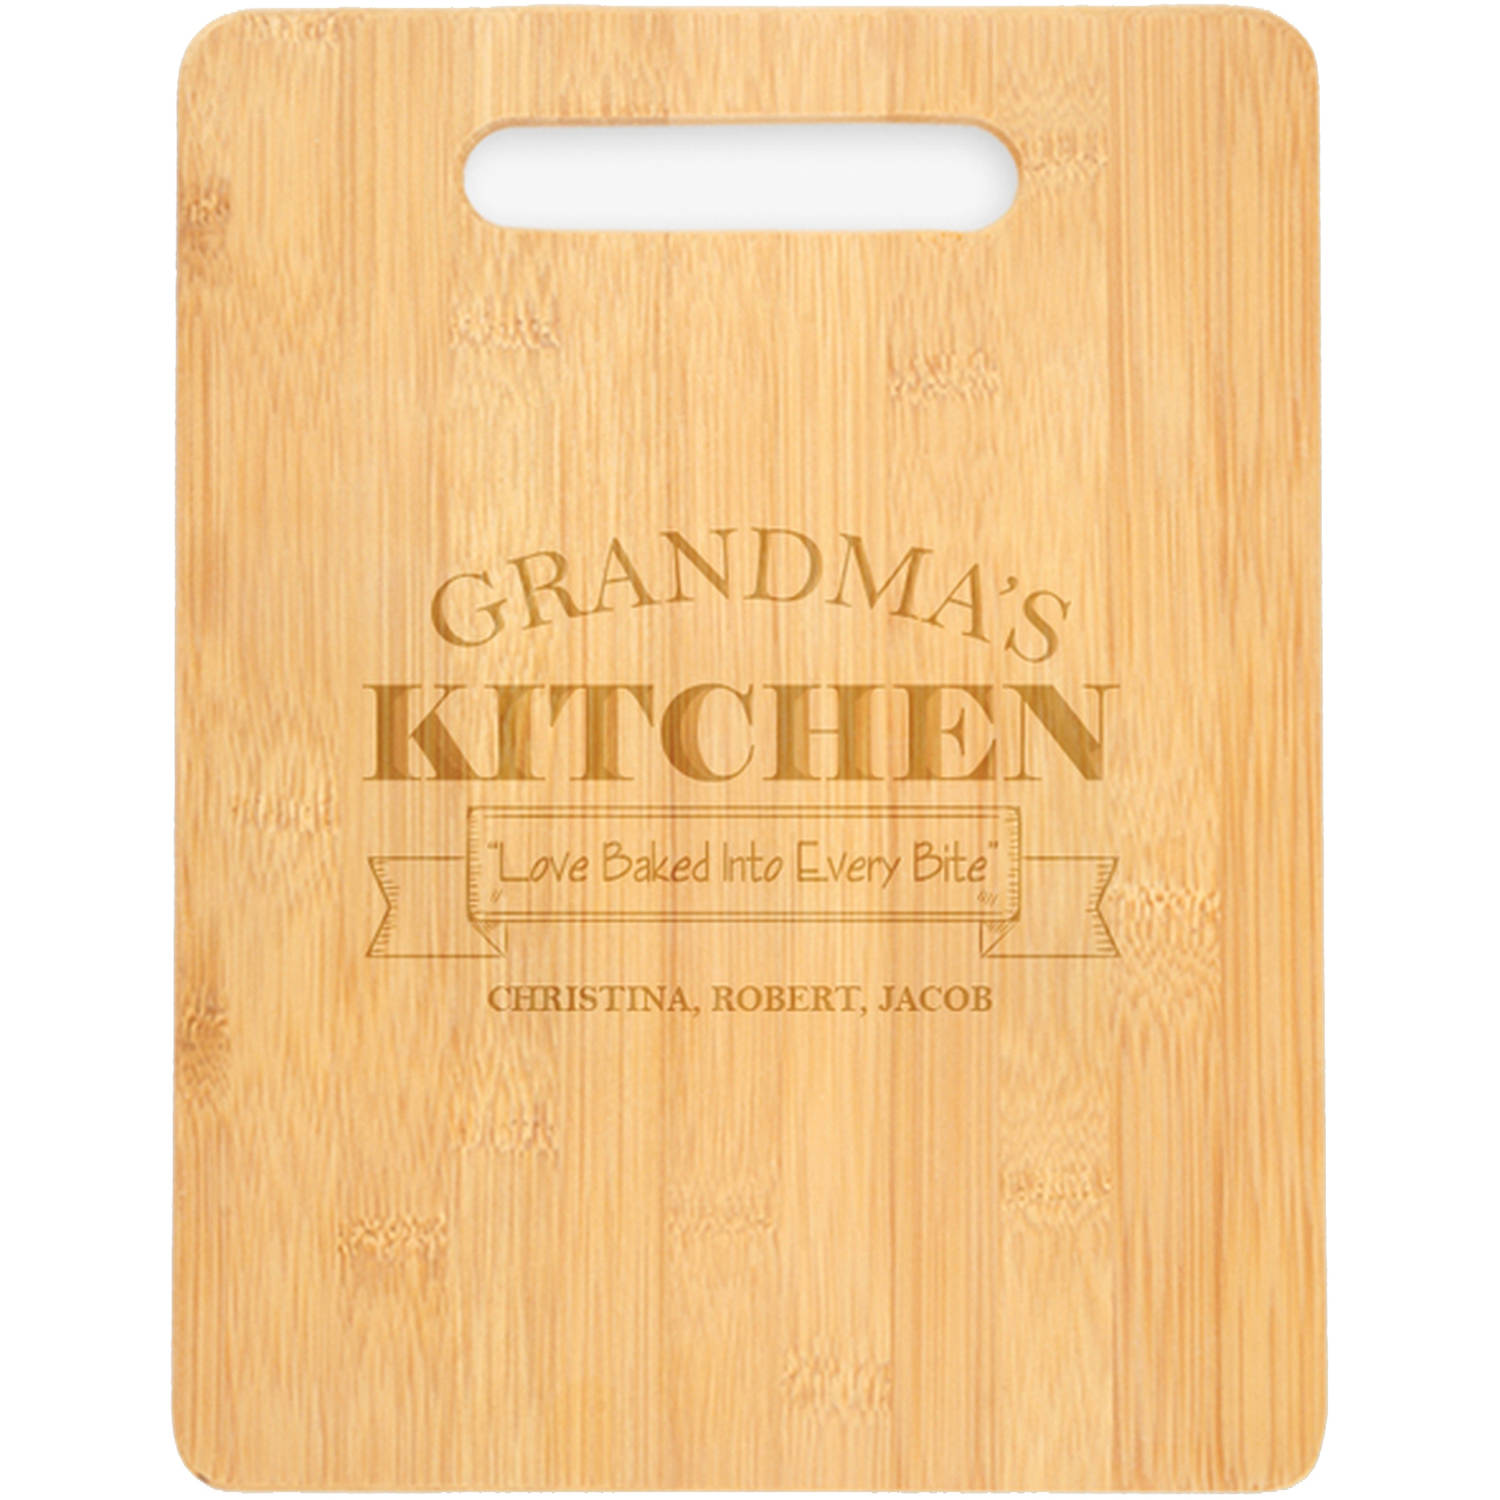 "Grandma's Kitchen Personalized Cutting Board, Sizes 12.5"" x 11.5"" and 12.5"" x 13.75"""